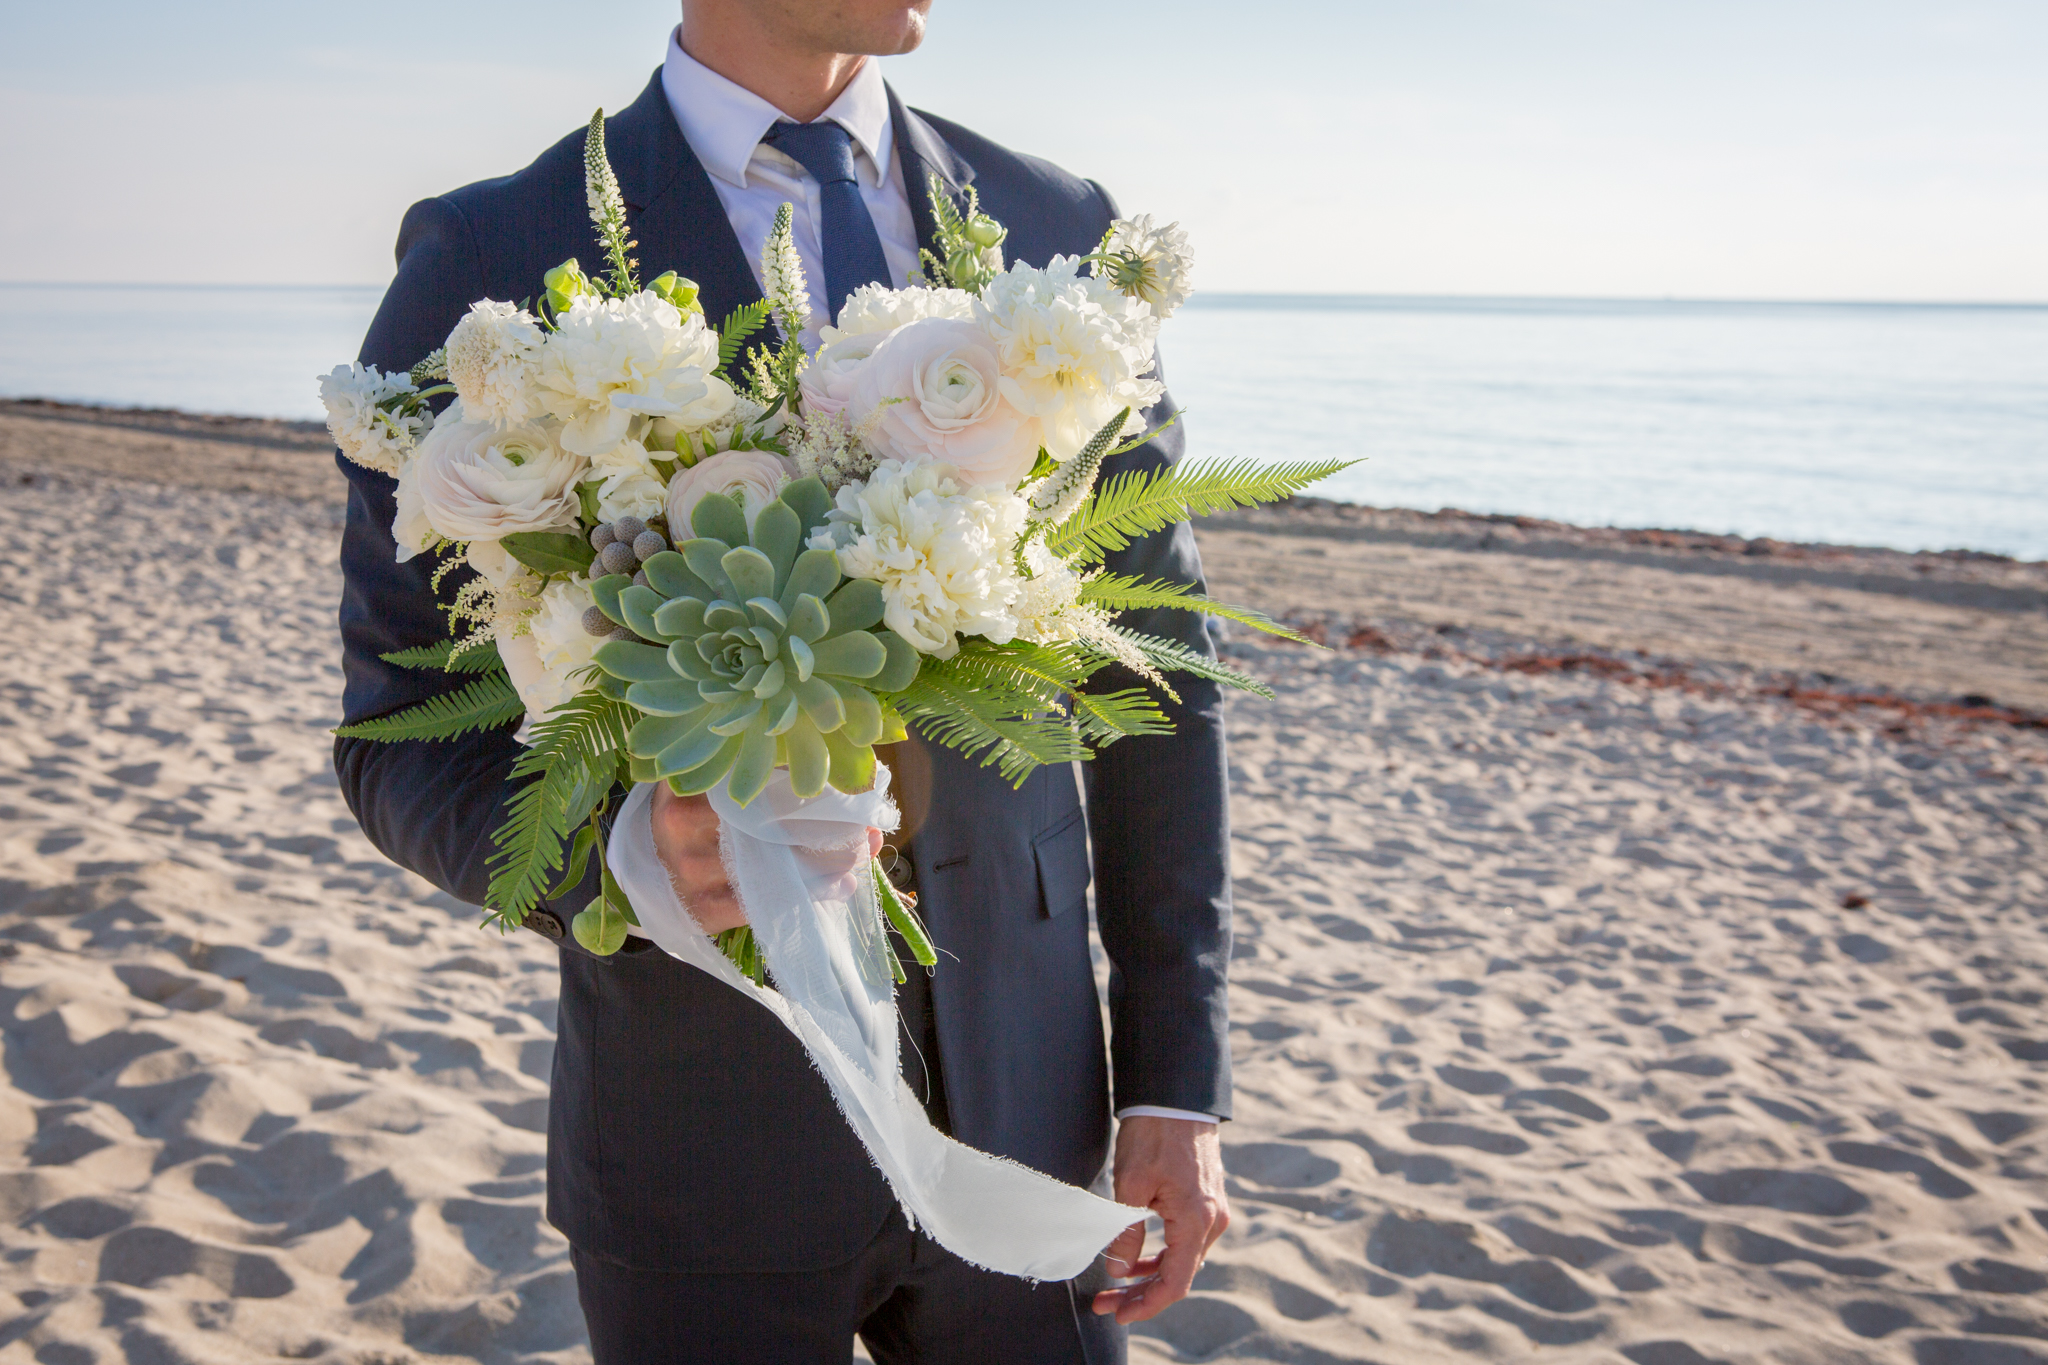 Groom on beach holding natural bride bouquet